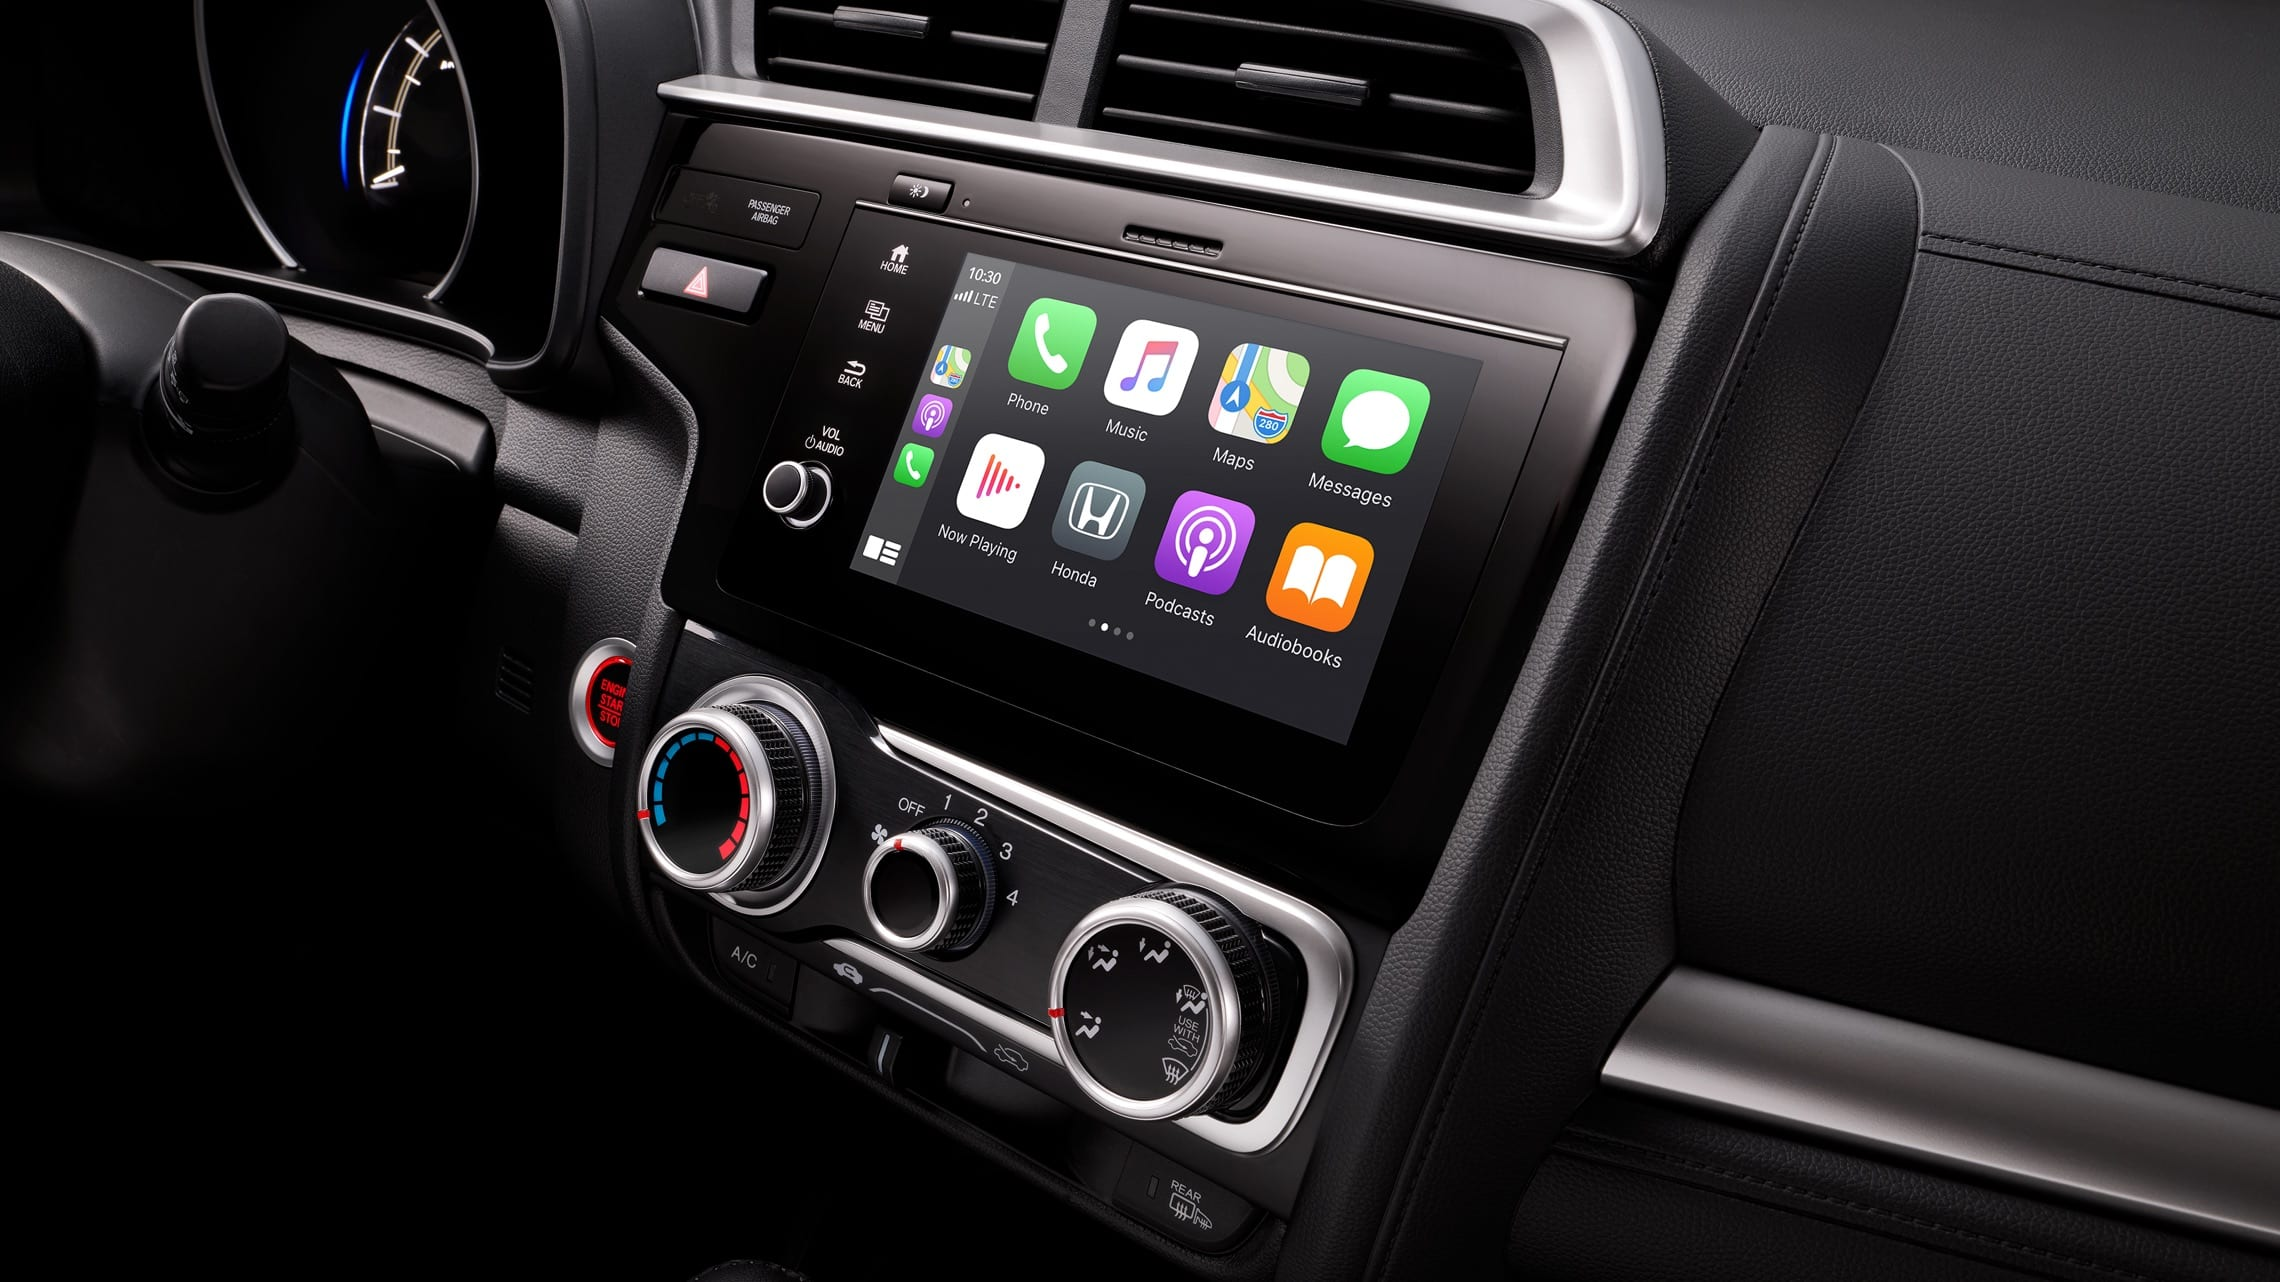 Display Audio touch-screen with Apple CarPlay™ detail on 2020 Honda Fit.